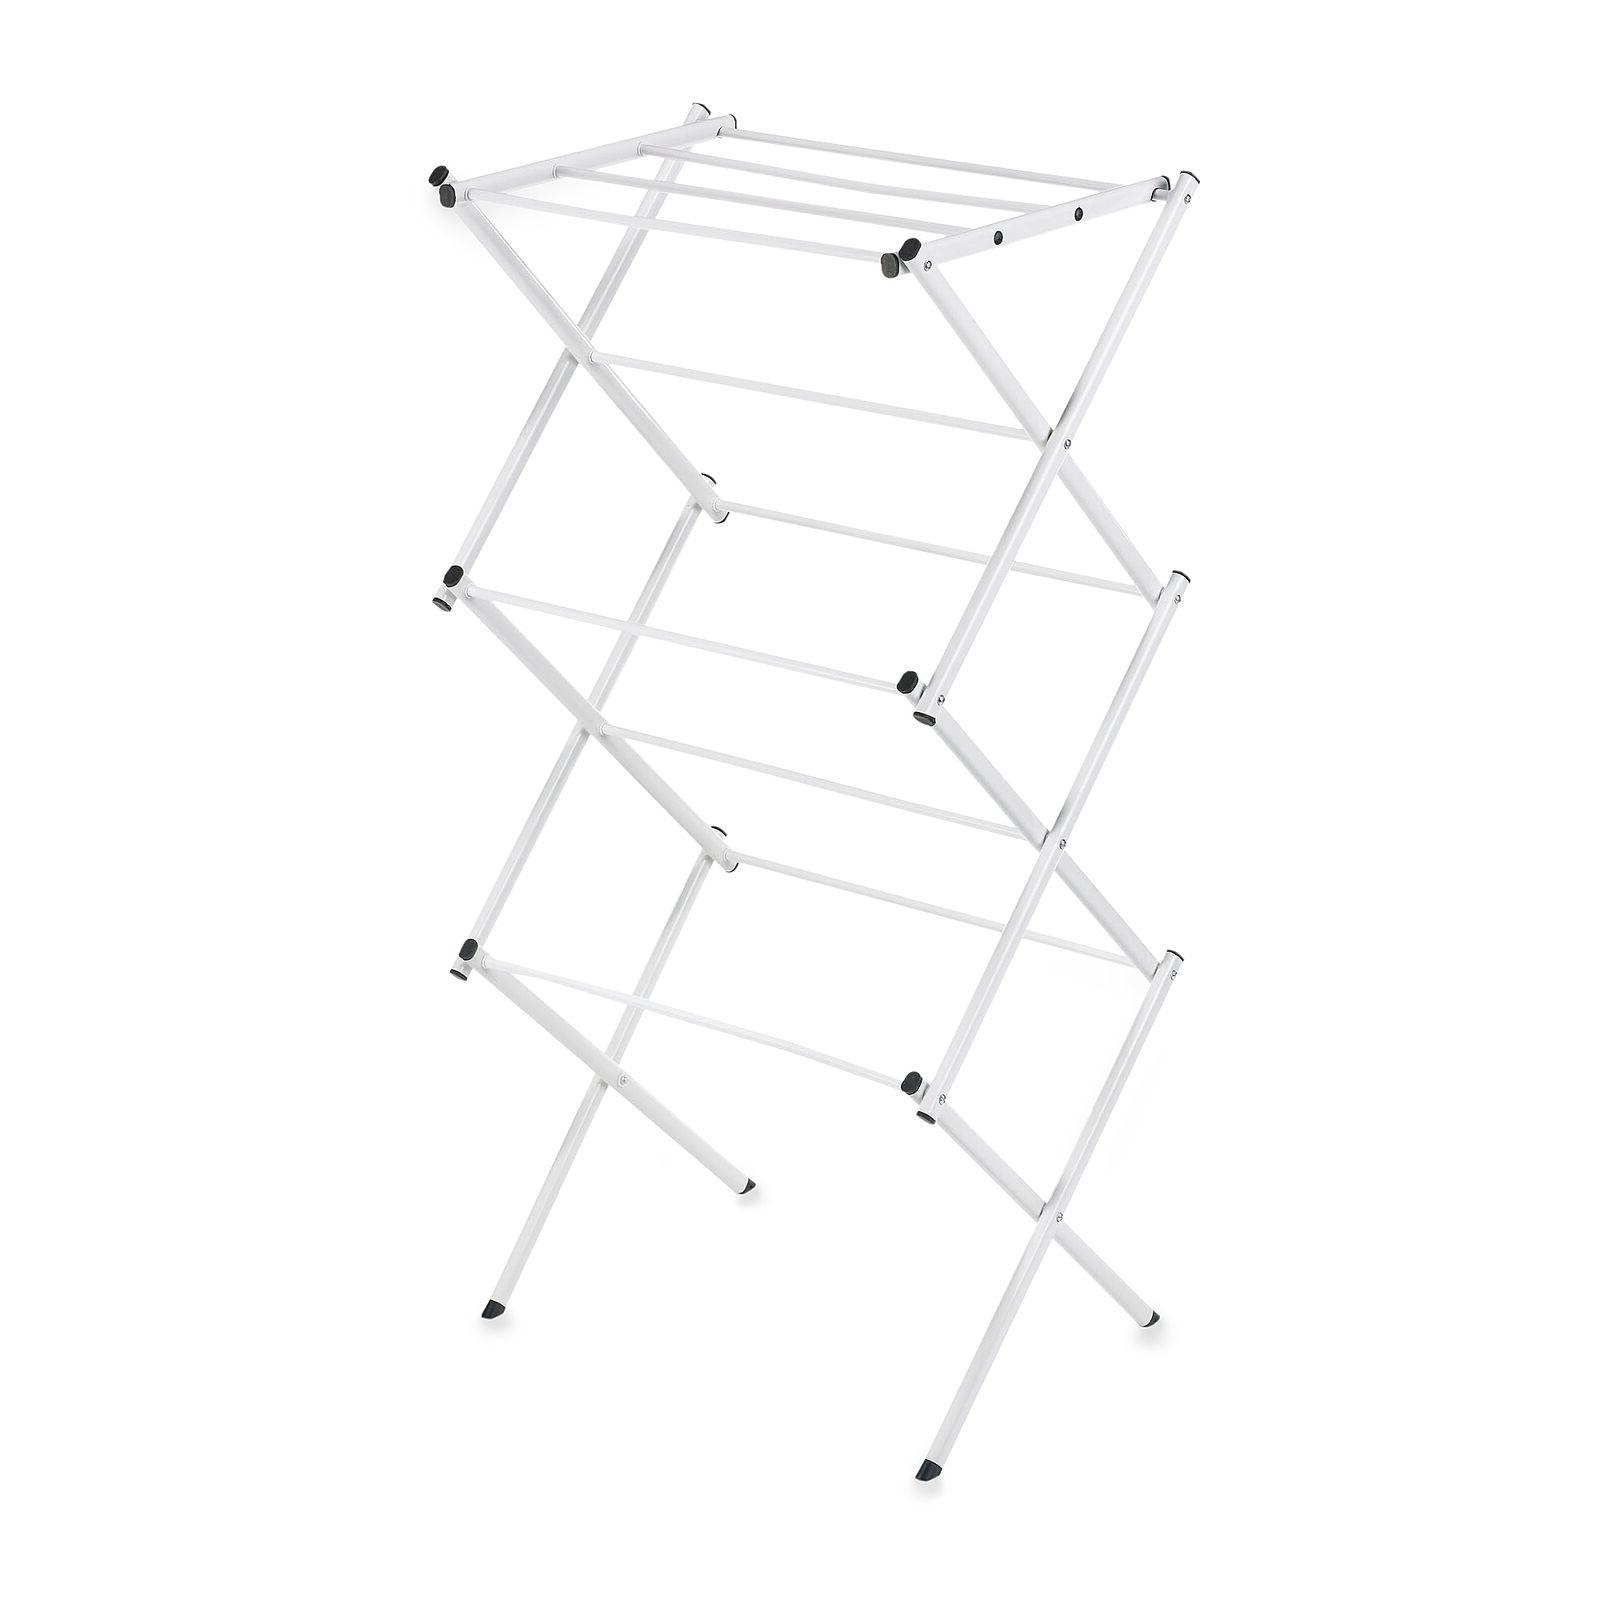 Polder Compact Accordion Dryer Rack in White